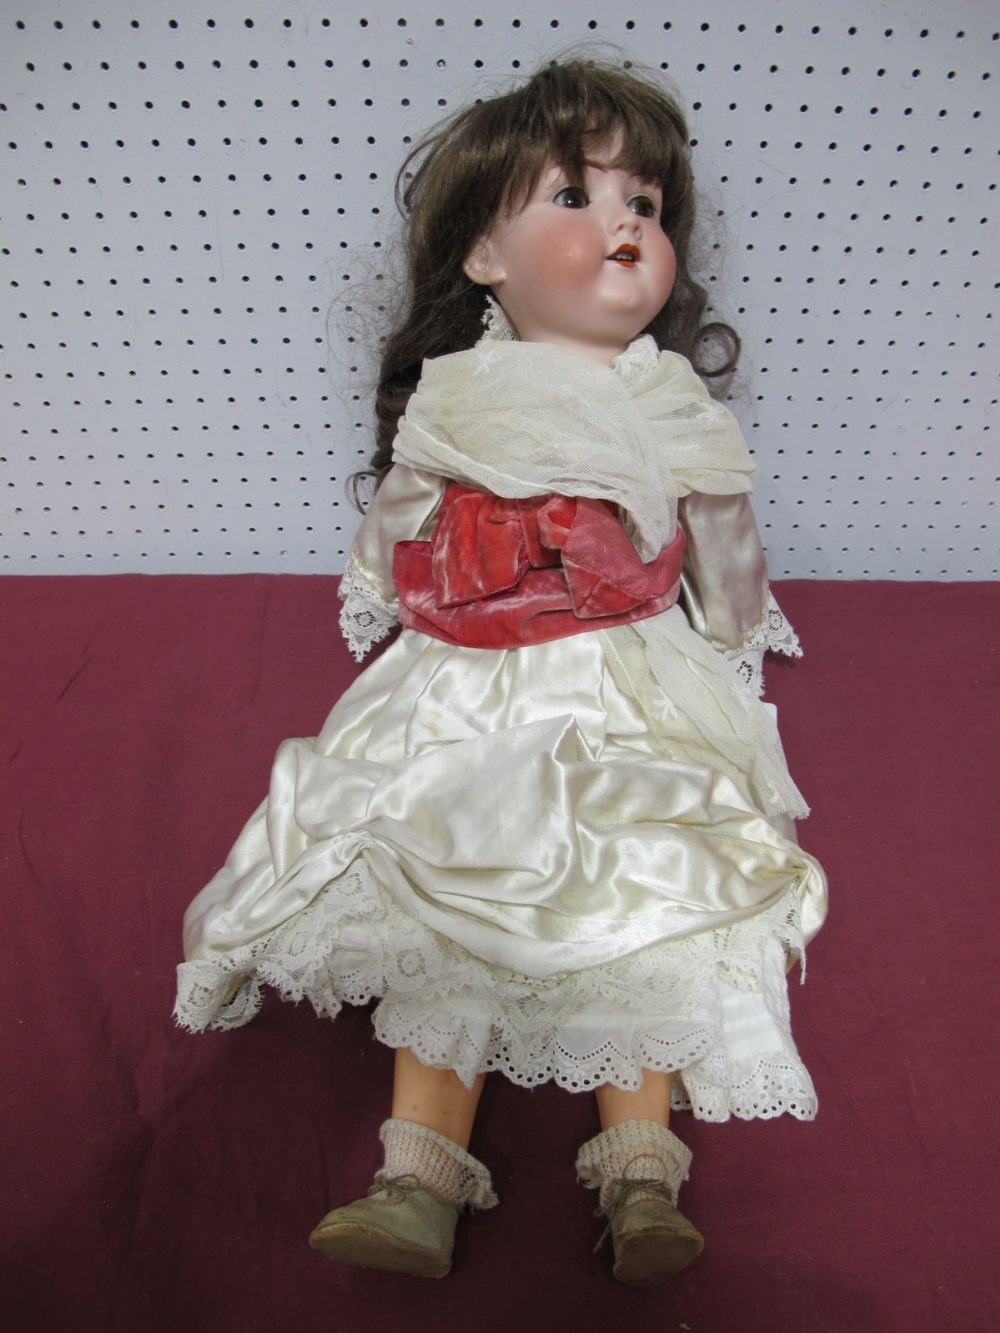 Lot 25 - An Early XX Century Bisque Headed Doll by Armand Marseilles of Germany, head stamped 390 A8 M. Fixed